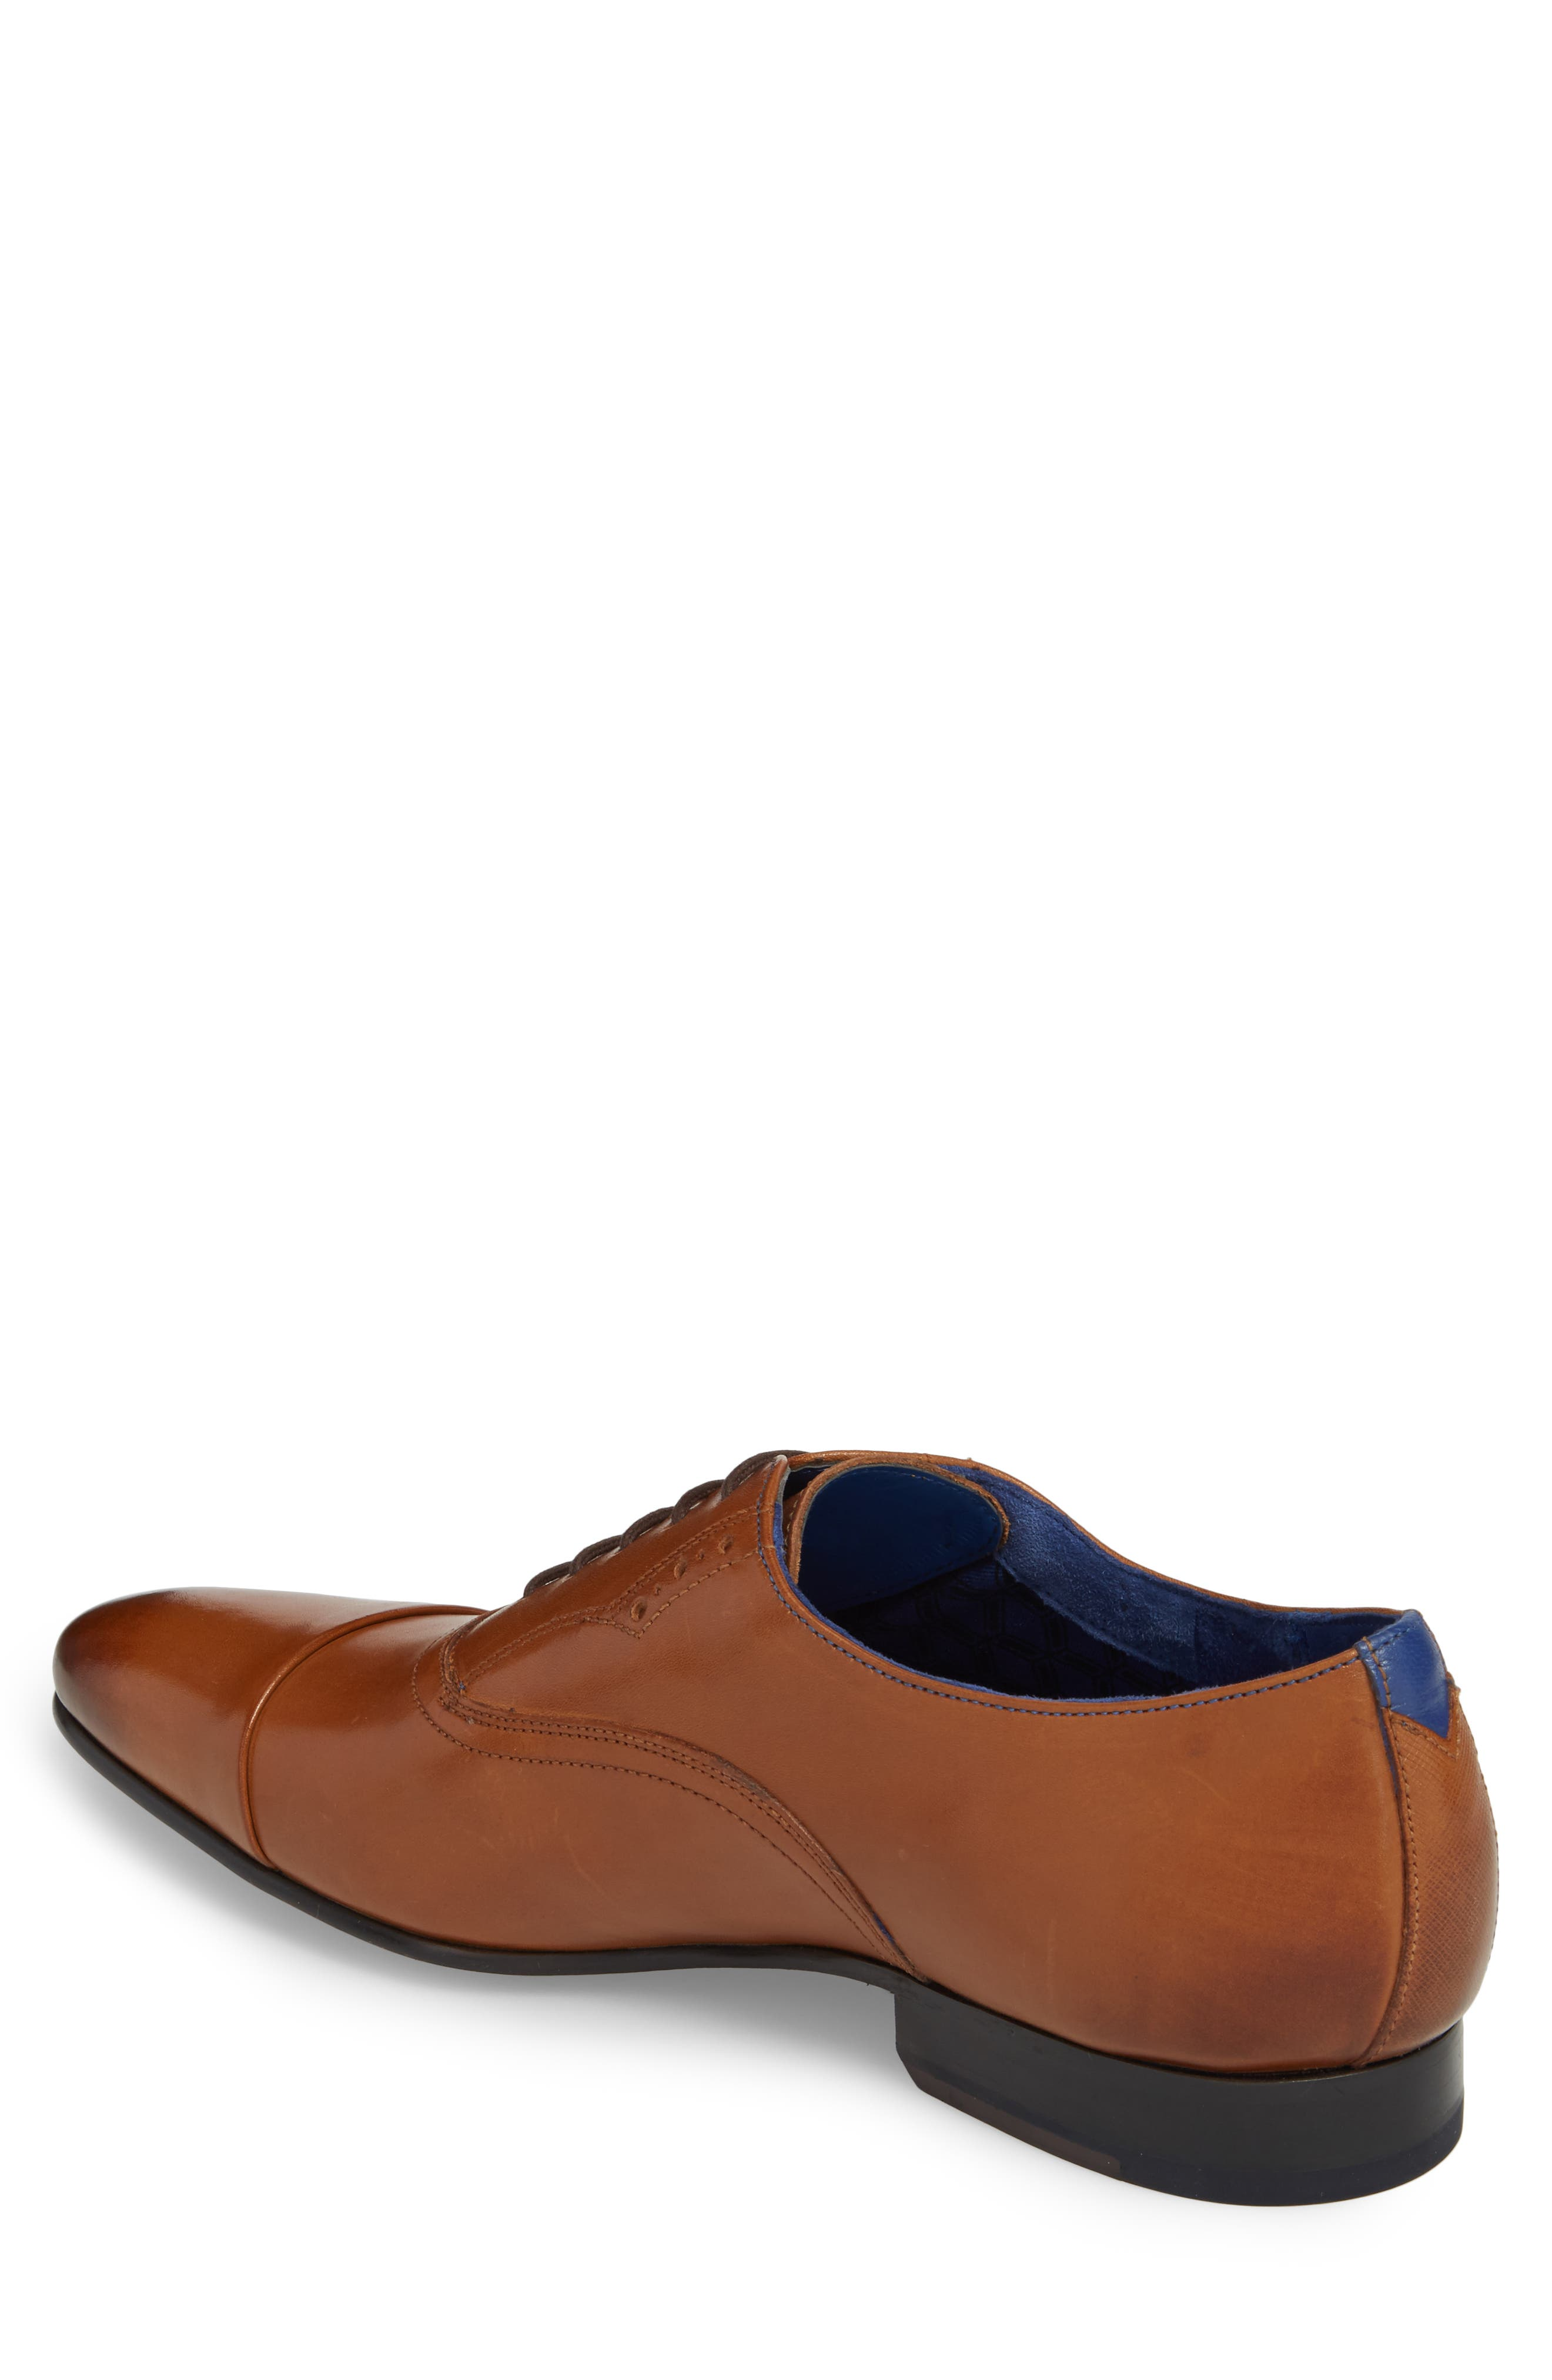 Murain Cap Toe Oxford,                             Alternate thumbnail 5, color,